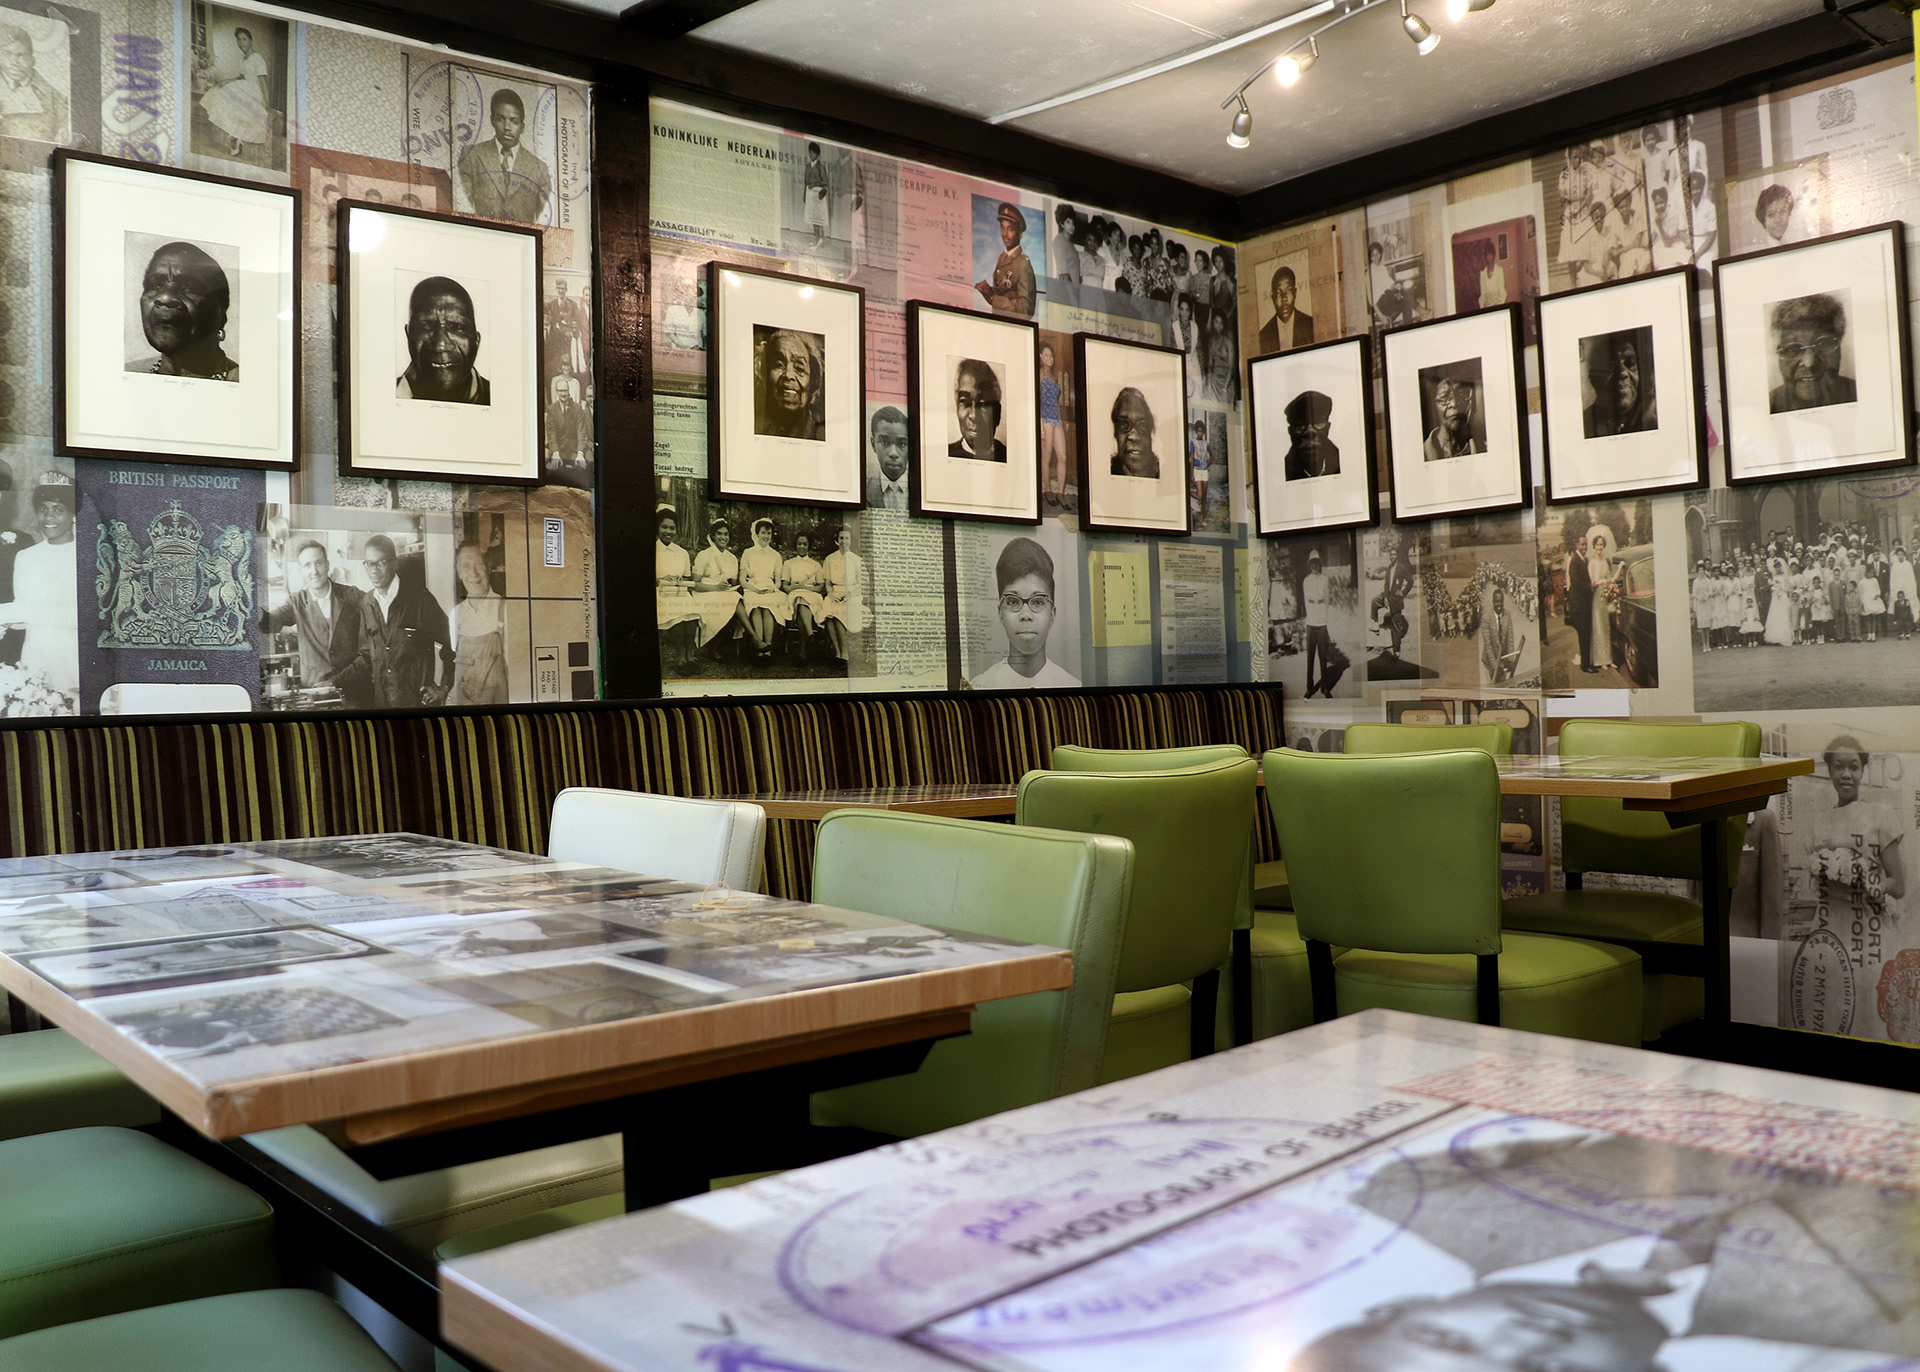 Caribbean Takeaway Takeover all the wall and table artwork produced by ESP as the backdrop to the stunning etchings.